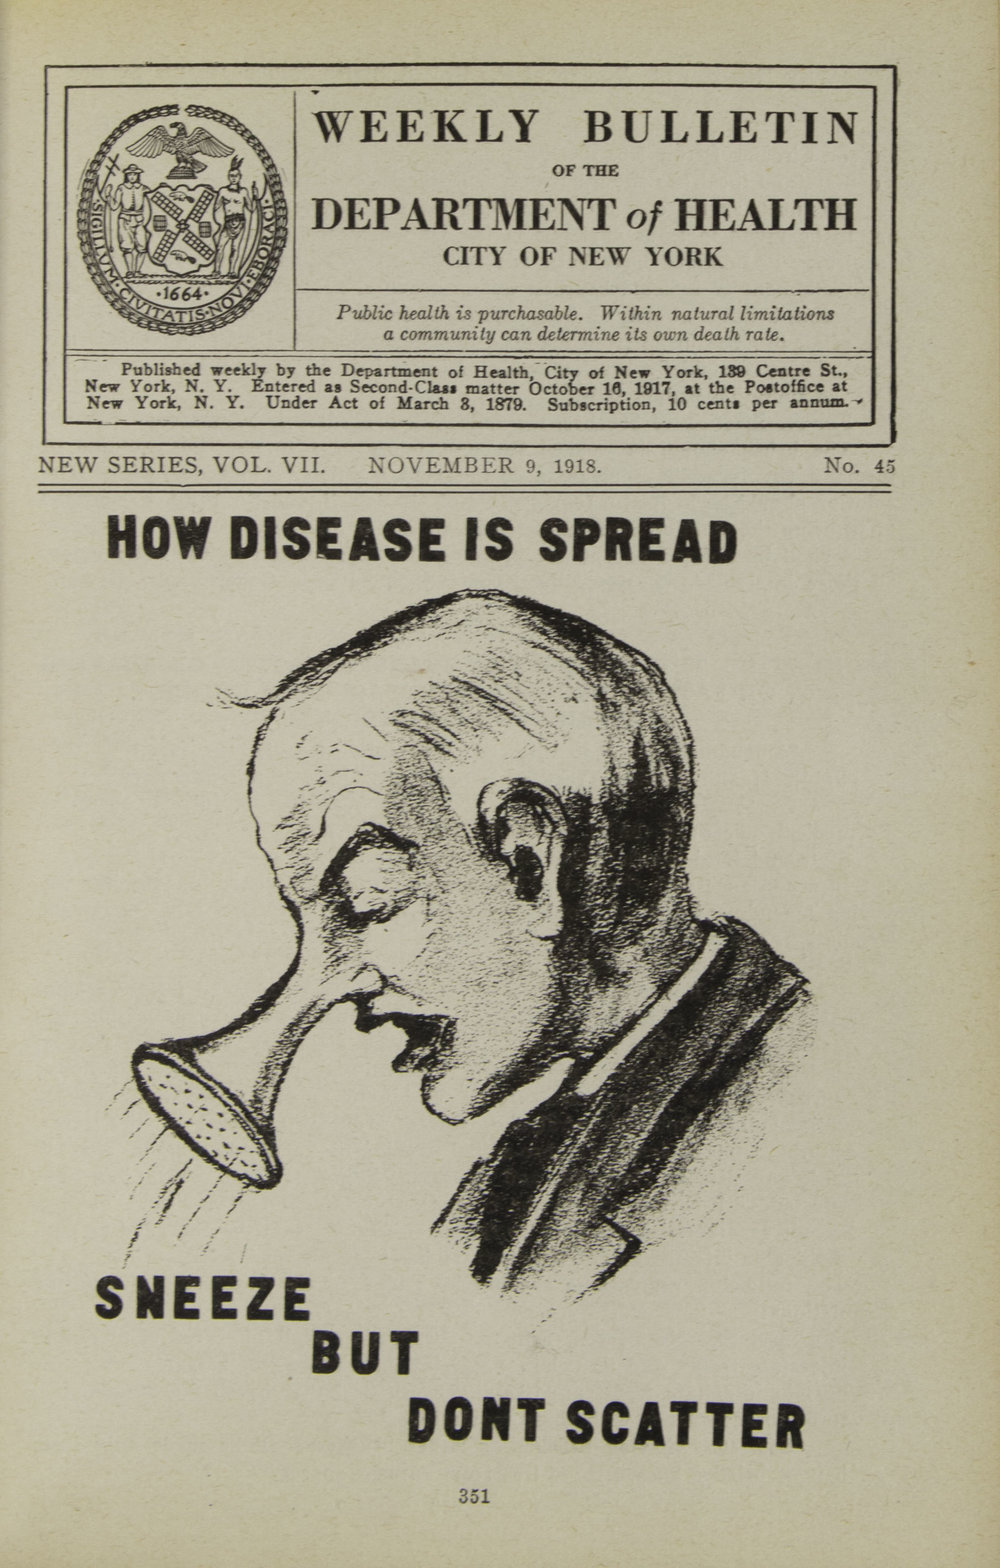 Weekly Bulletin of the Department of Health , October 19, 1918. NYC Municipal Library.